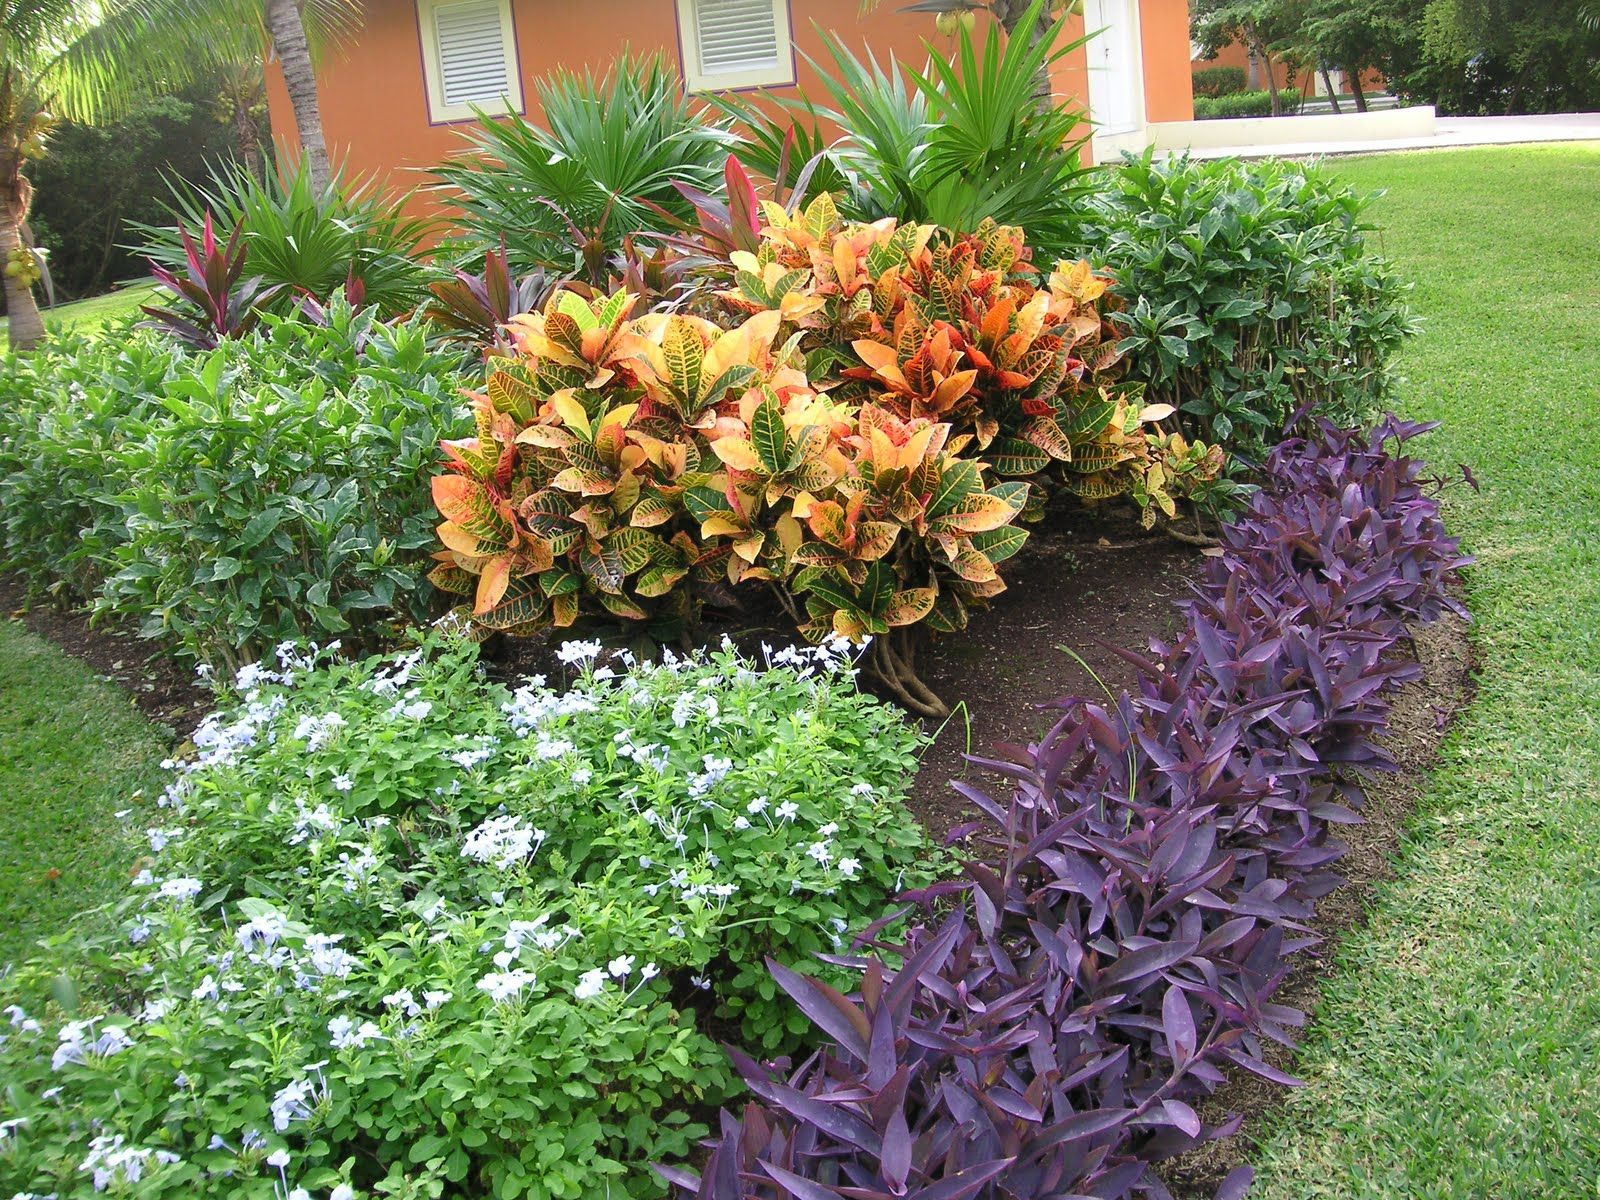 Flowers of the yucatan peninsula flowers gardens and yards for Plants for outdoor garden